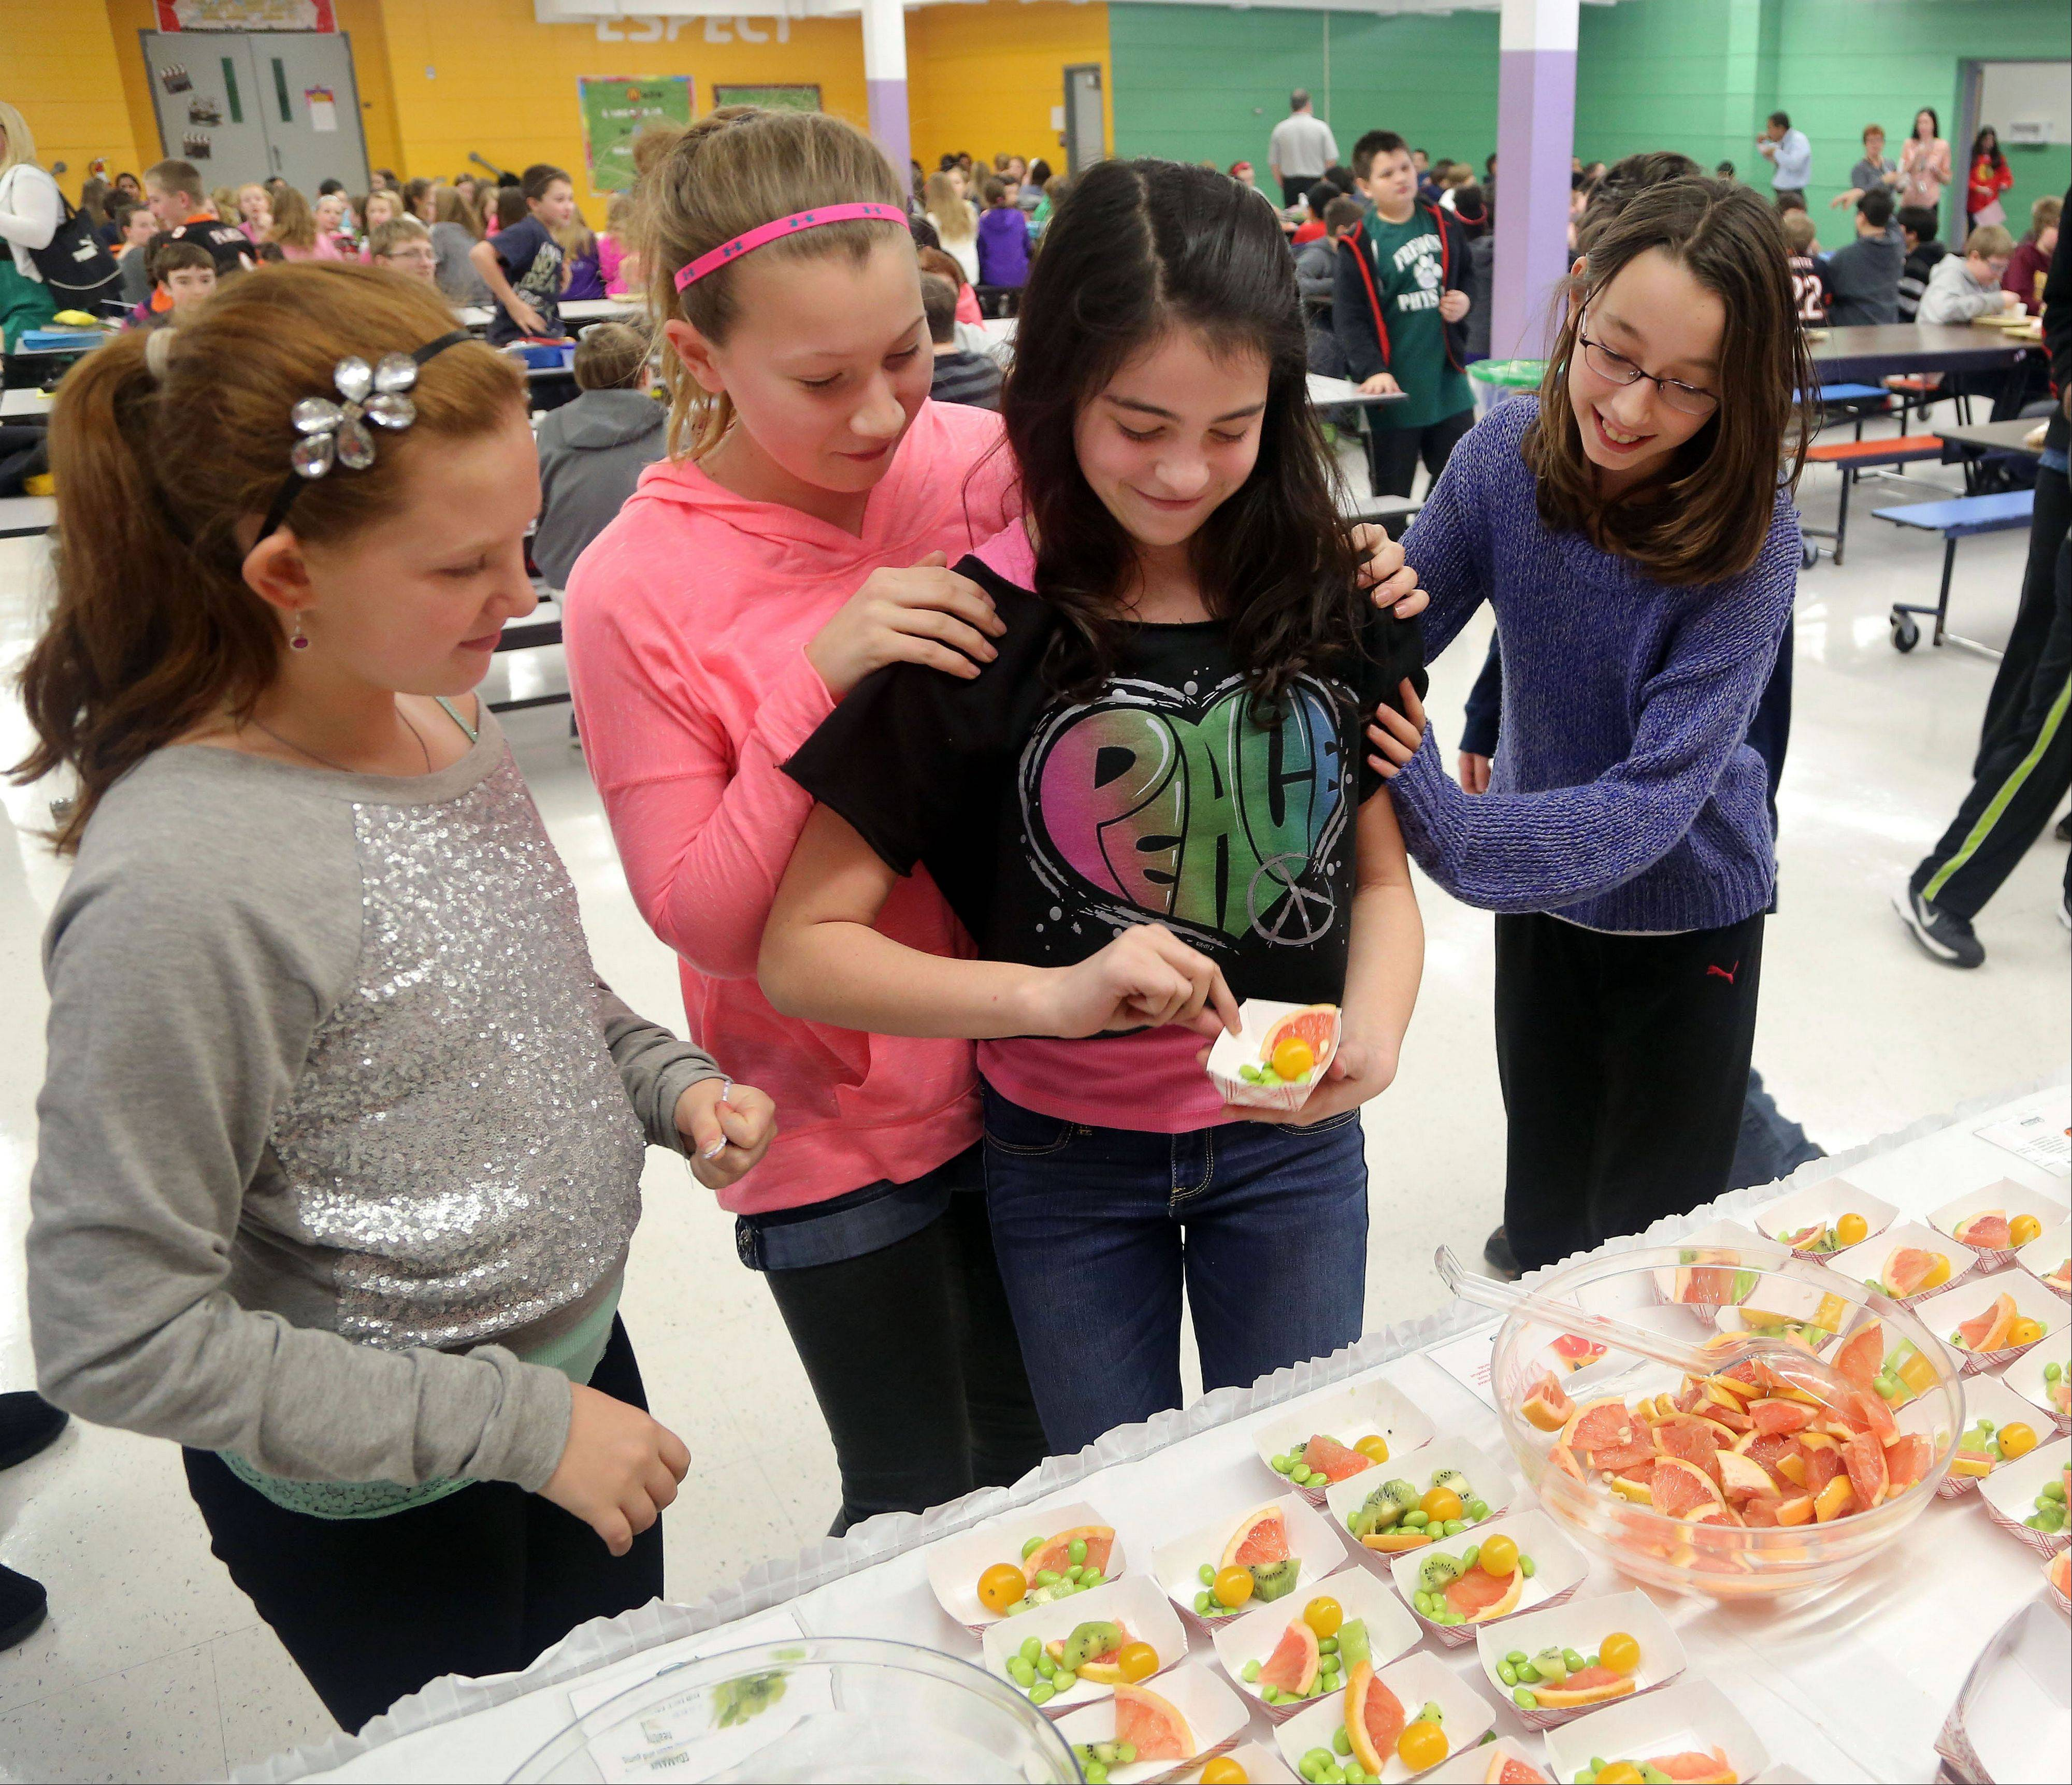 Sixth graders, from left, Mia Bulmash, Alexis Naddy, Lilly Port and Alexandra Merkel, test out new fruits and vegetables Thursday that will be introduced to their hot lunch menu at a Fremont Middle School in Mundelein.